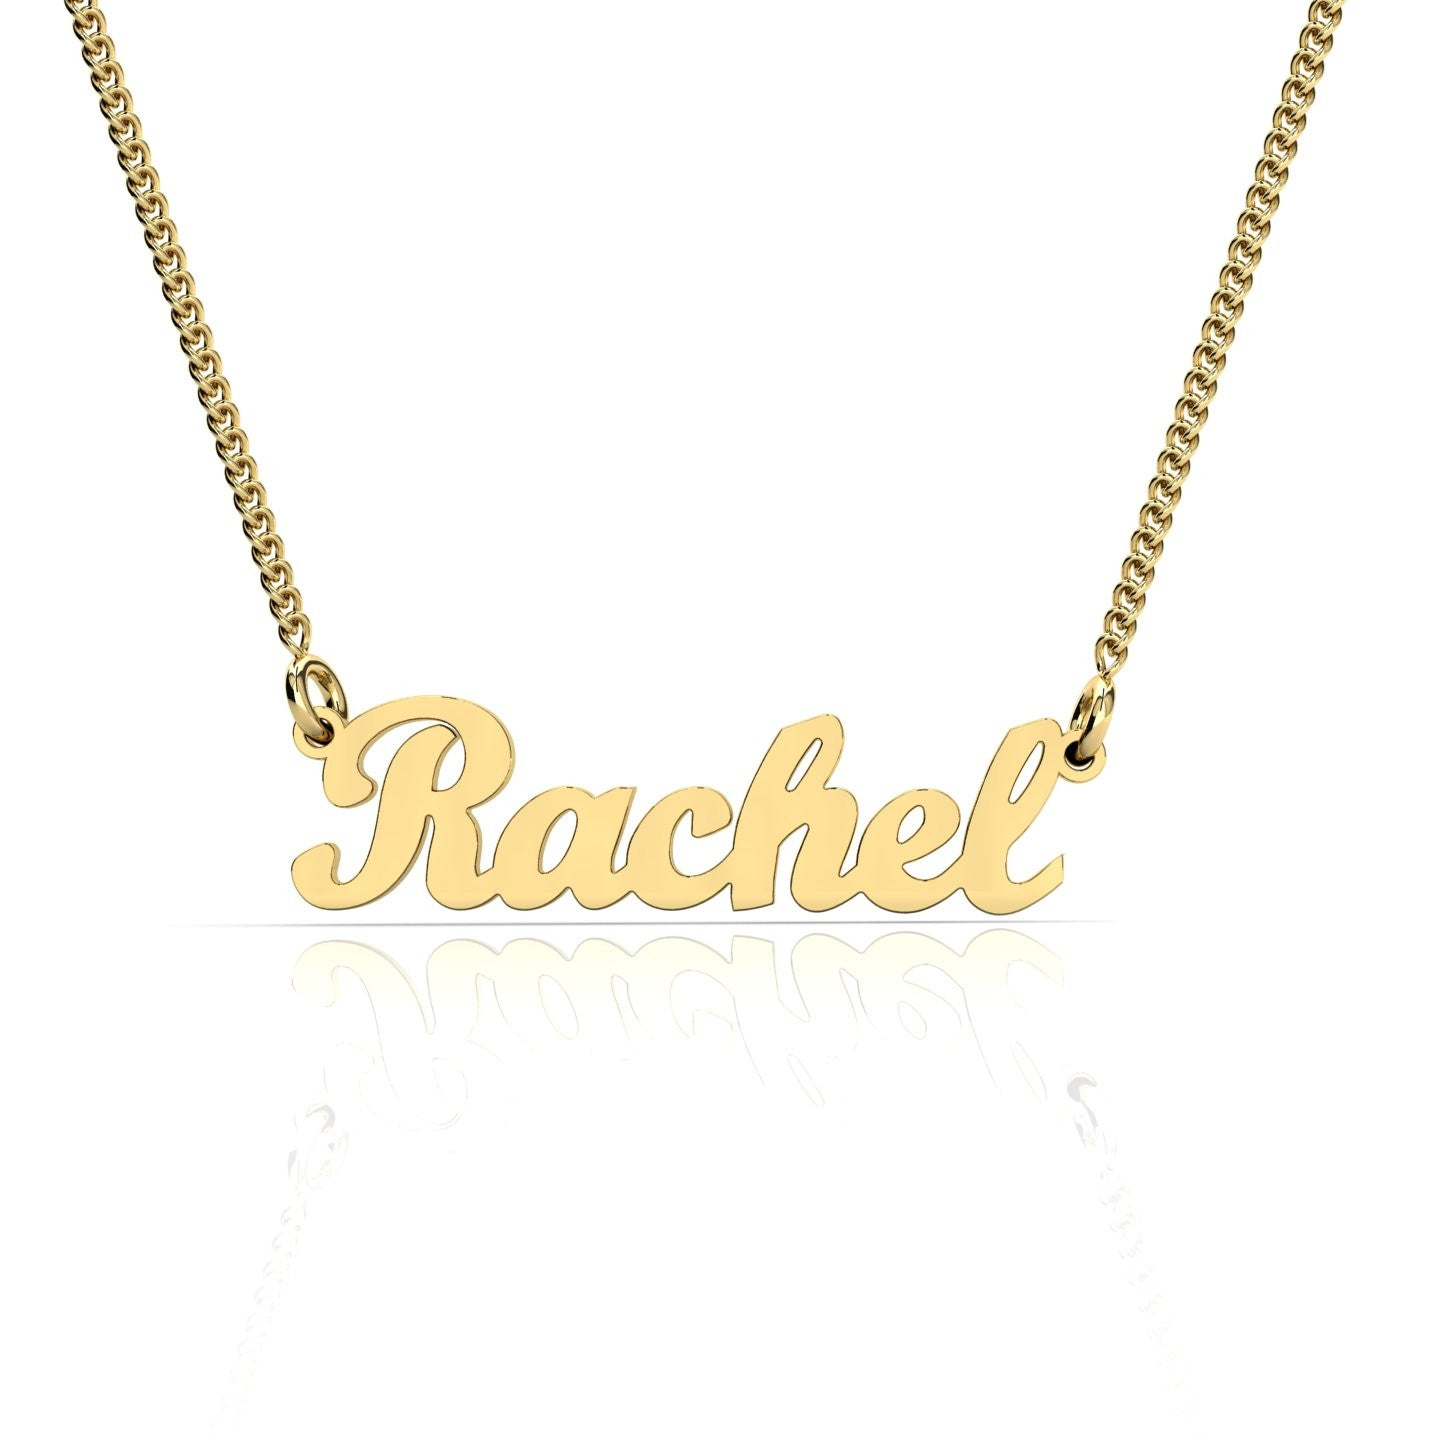 Name necklace rachel gold pendant star of d name necklace rachel gold pendant aloadofball Choice Image